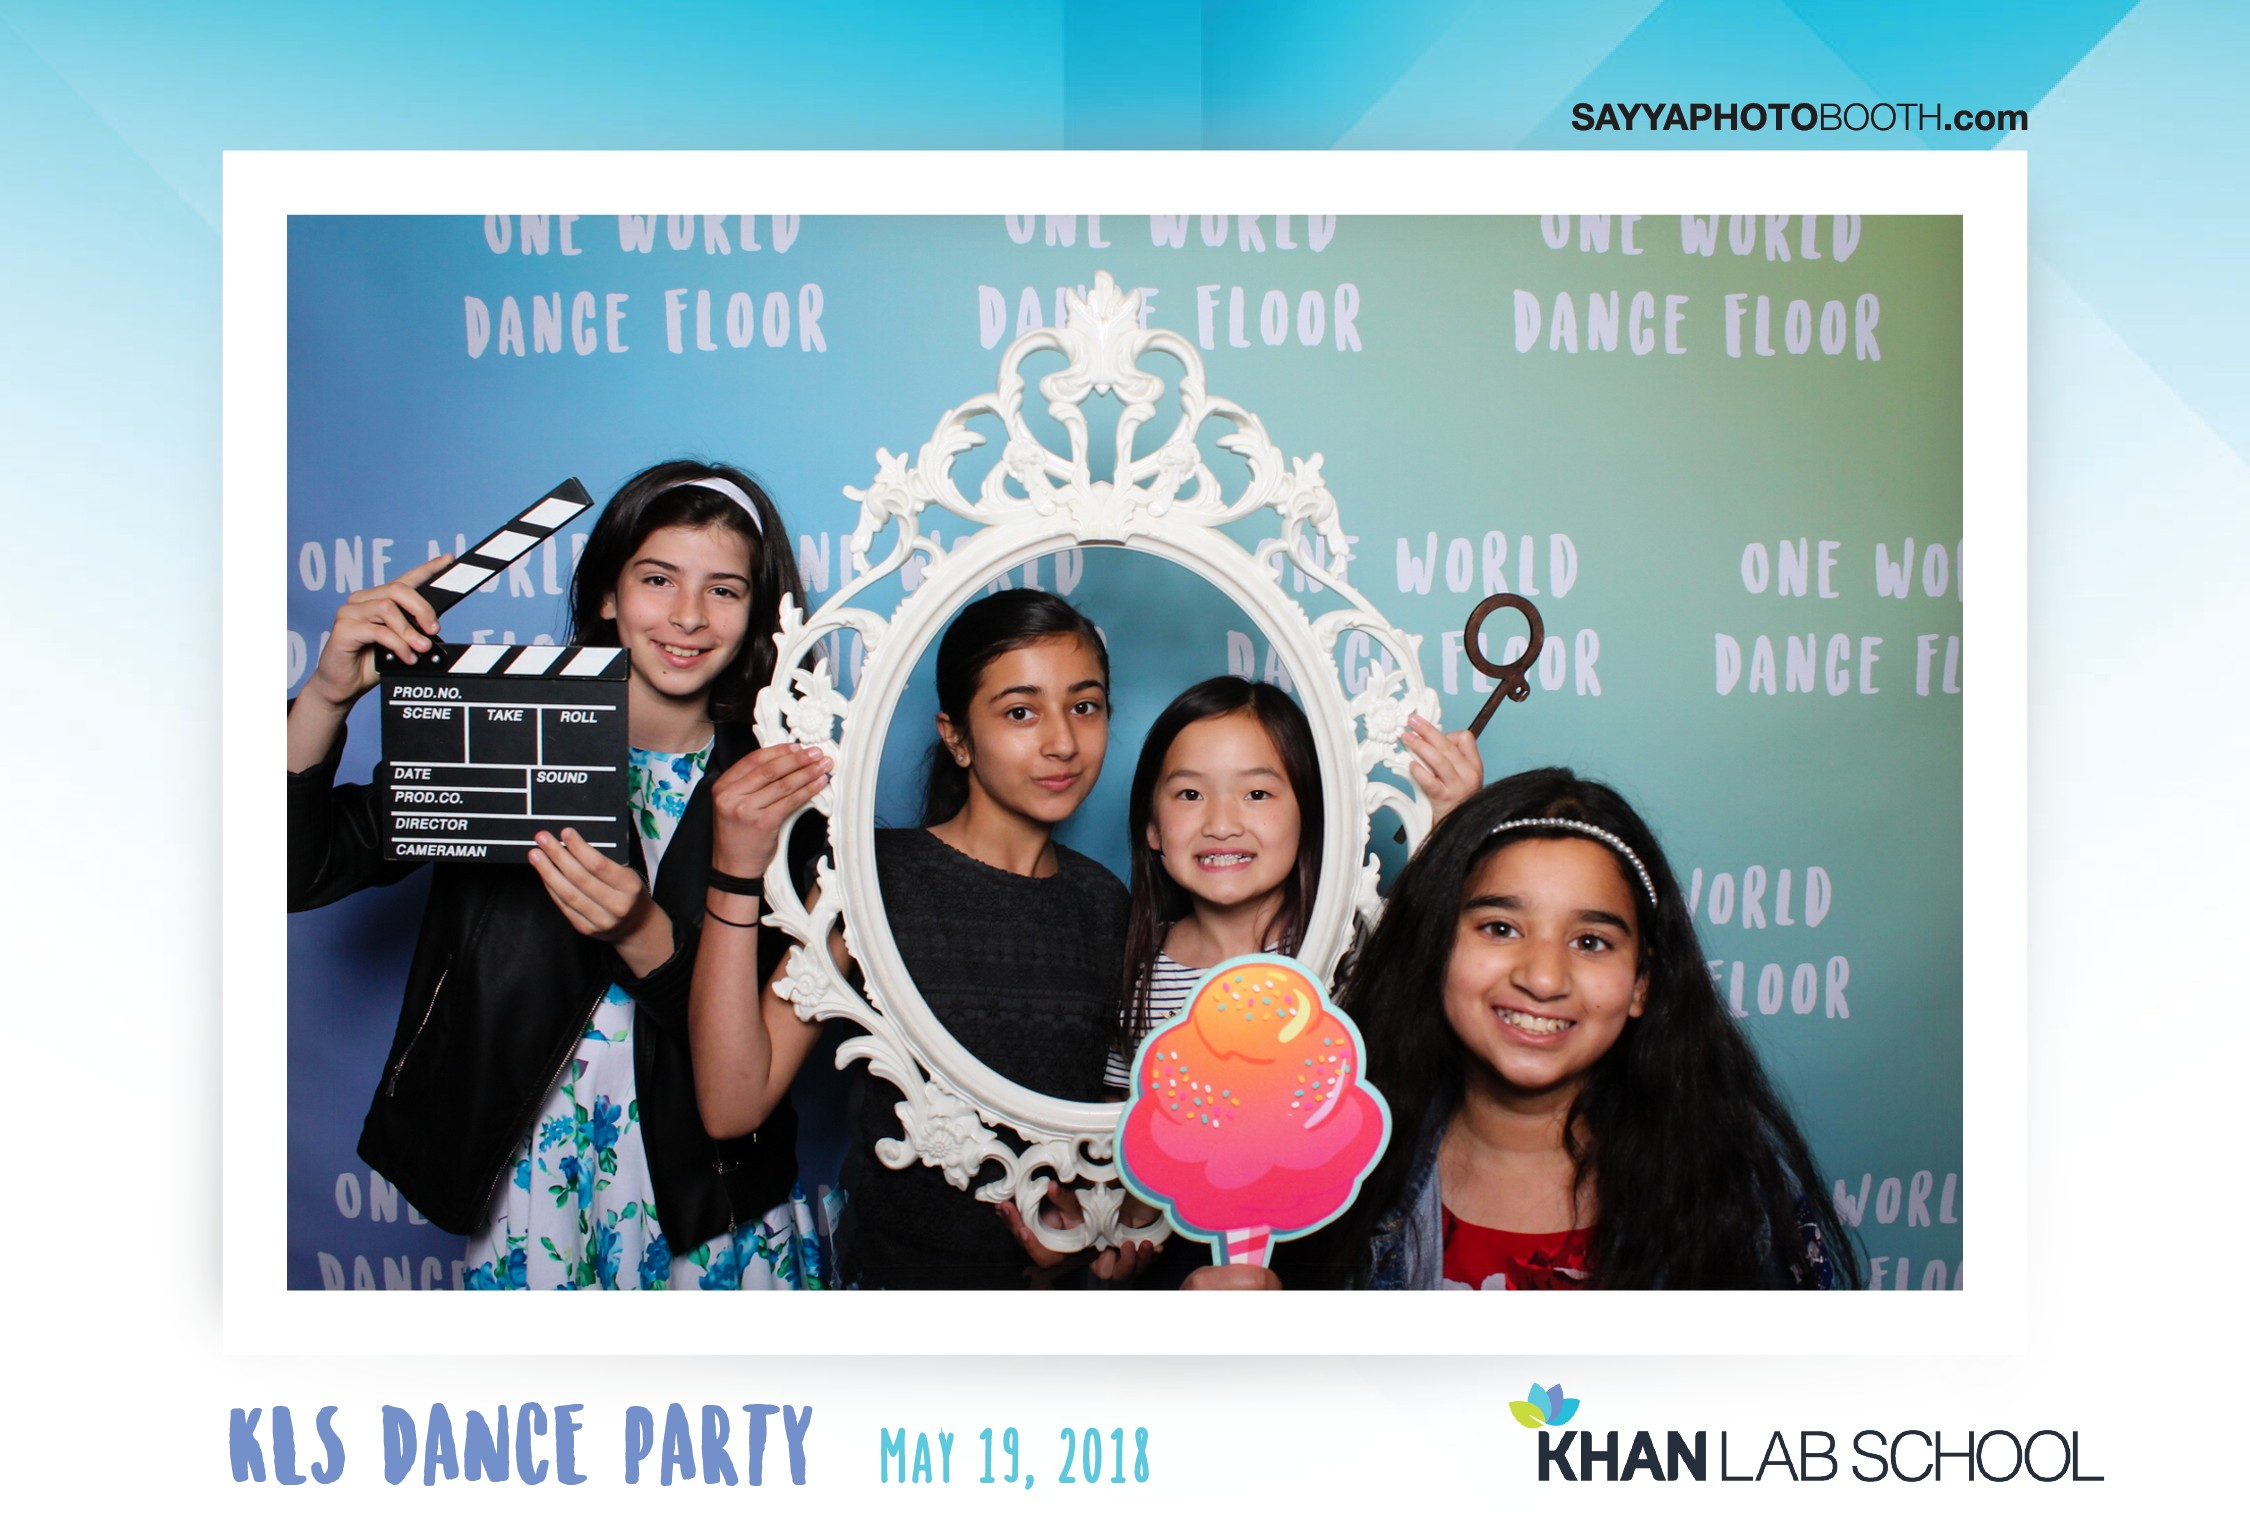 Khan Lab School Dance Party